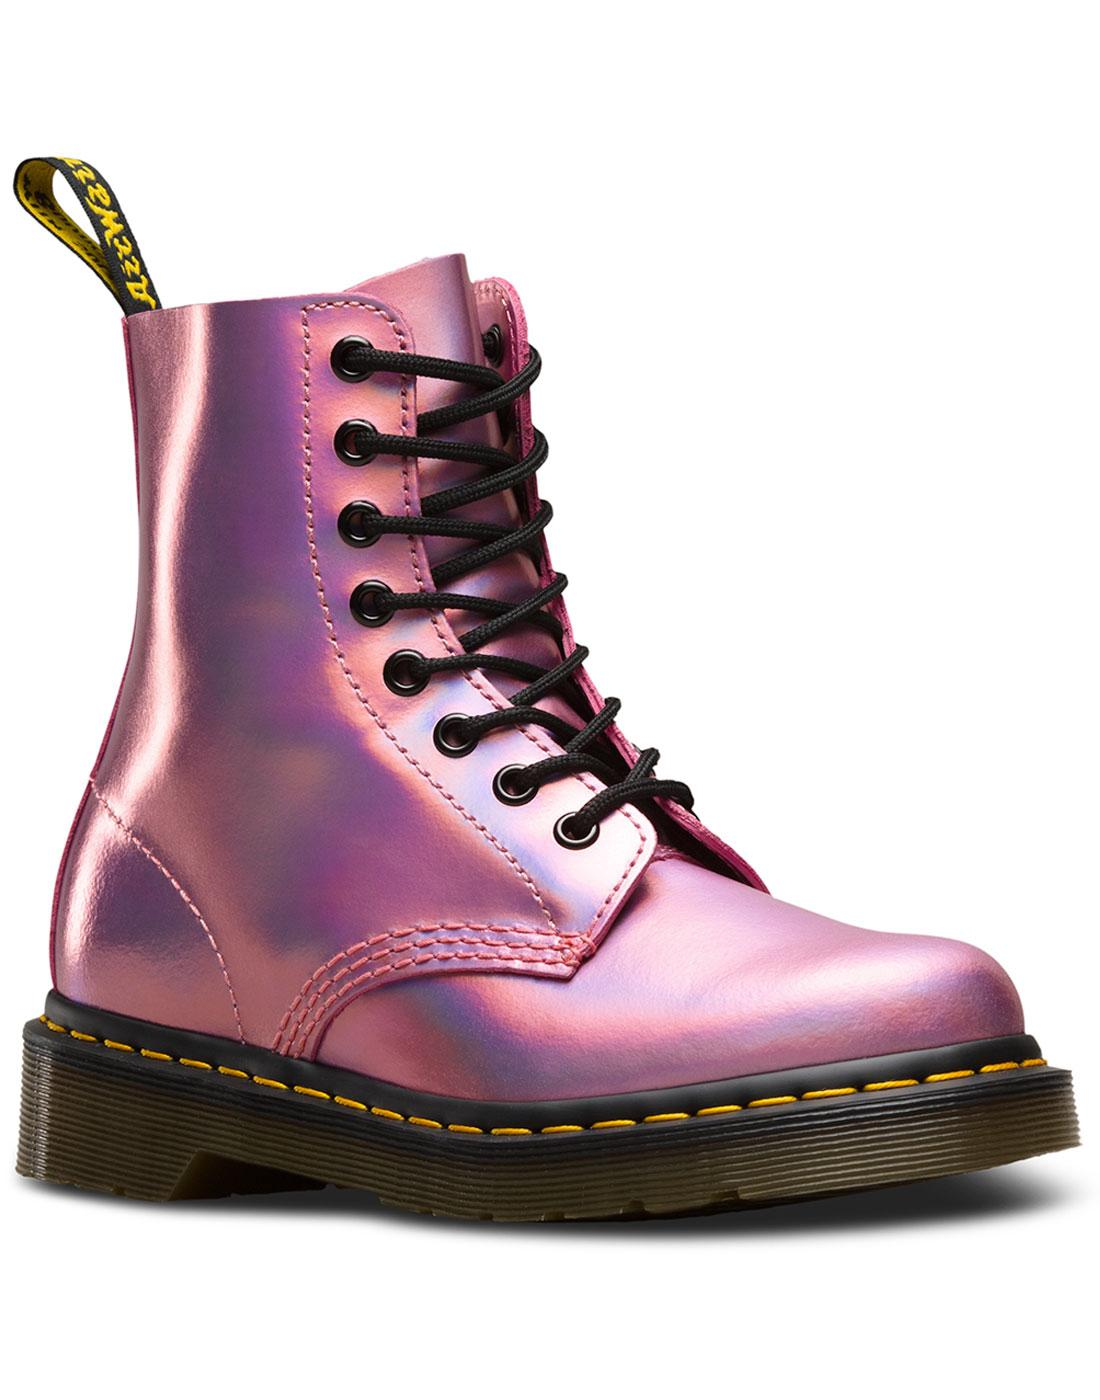 DR MARTENS 1460 Pascal Iced Metallic 70s Glam Boots Pink 61b3b1c01108